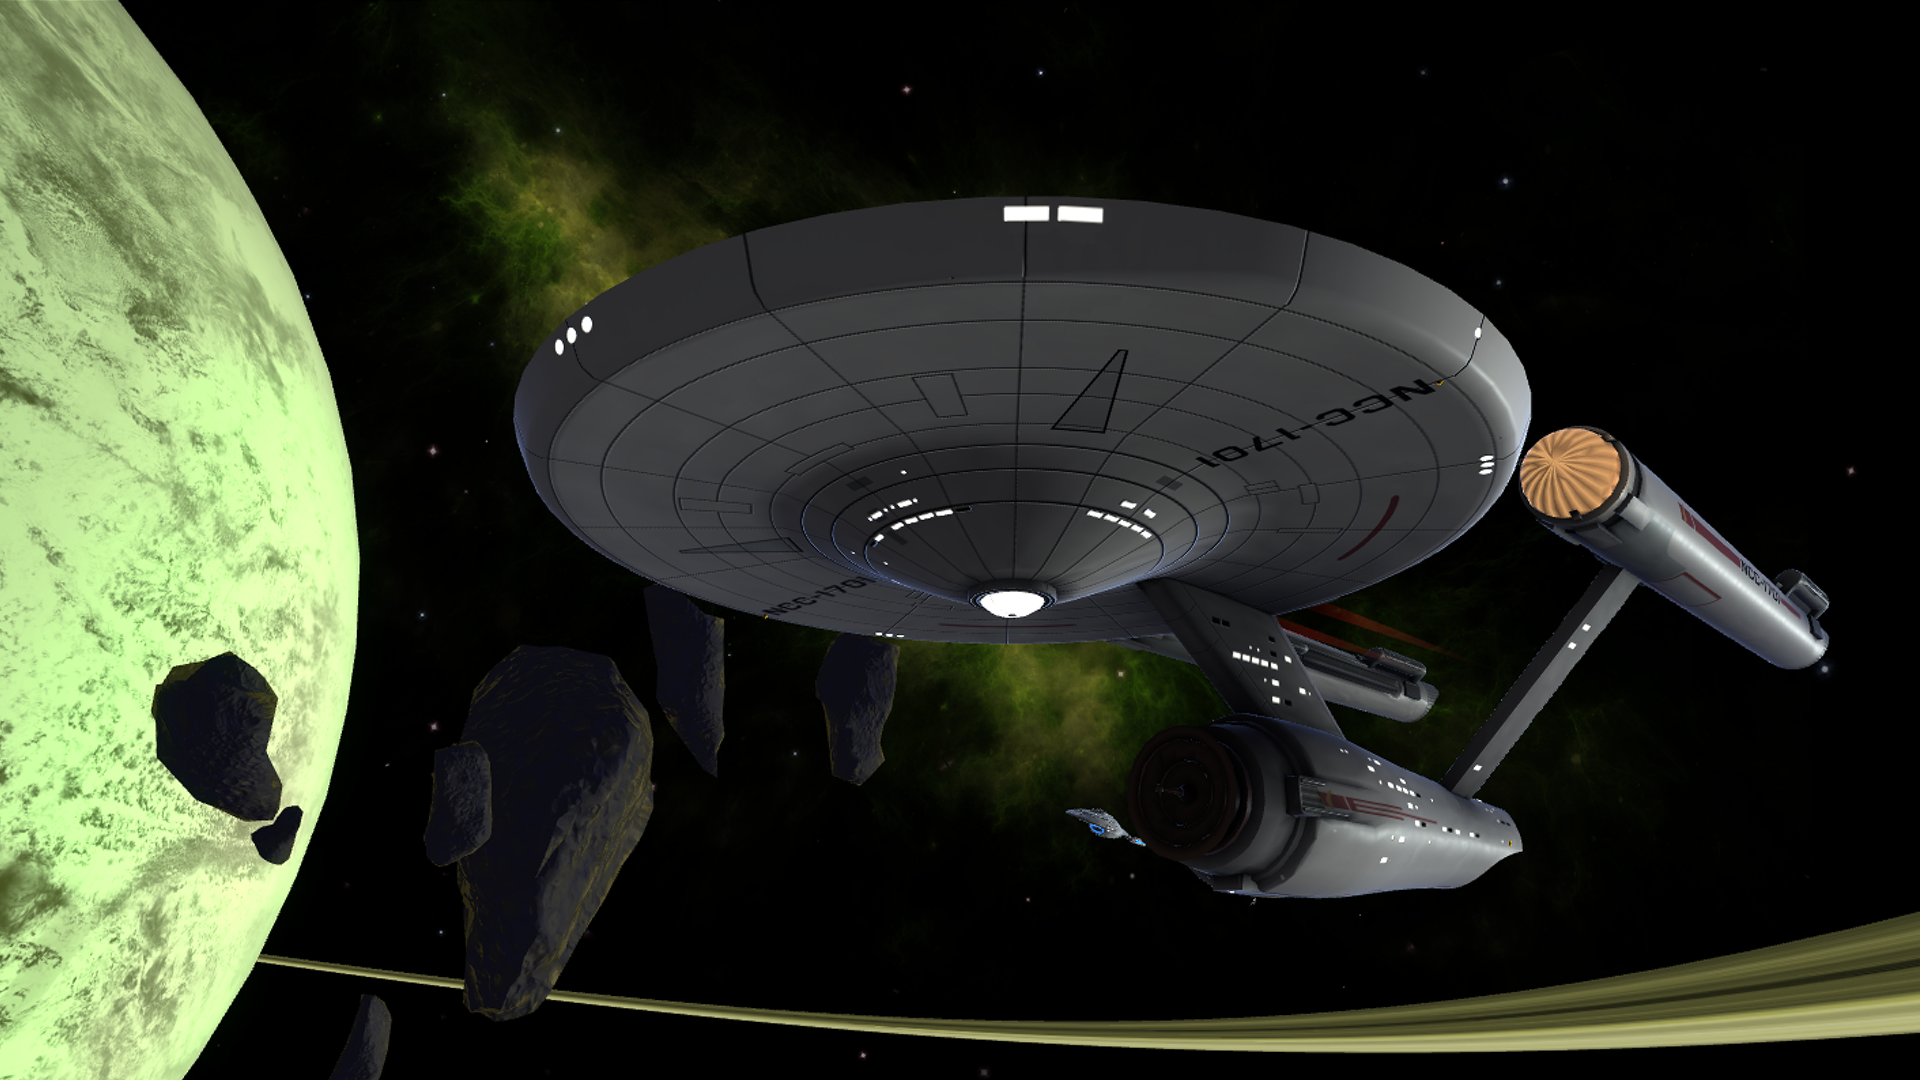 The Constitution Class ship